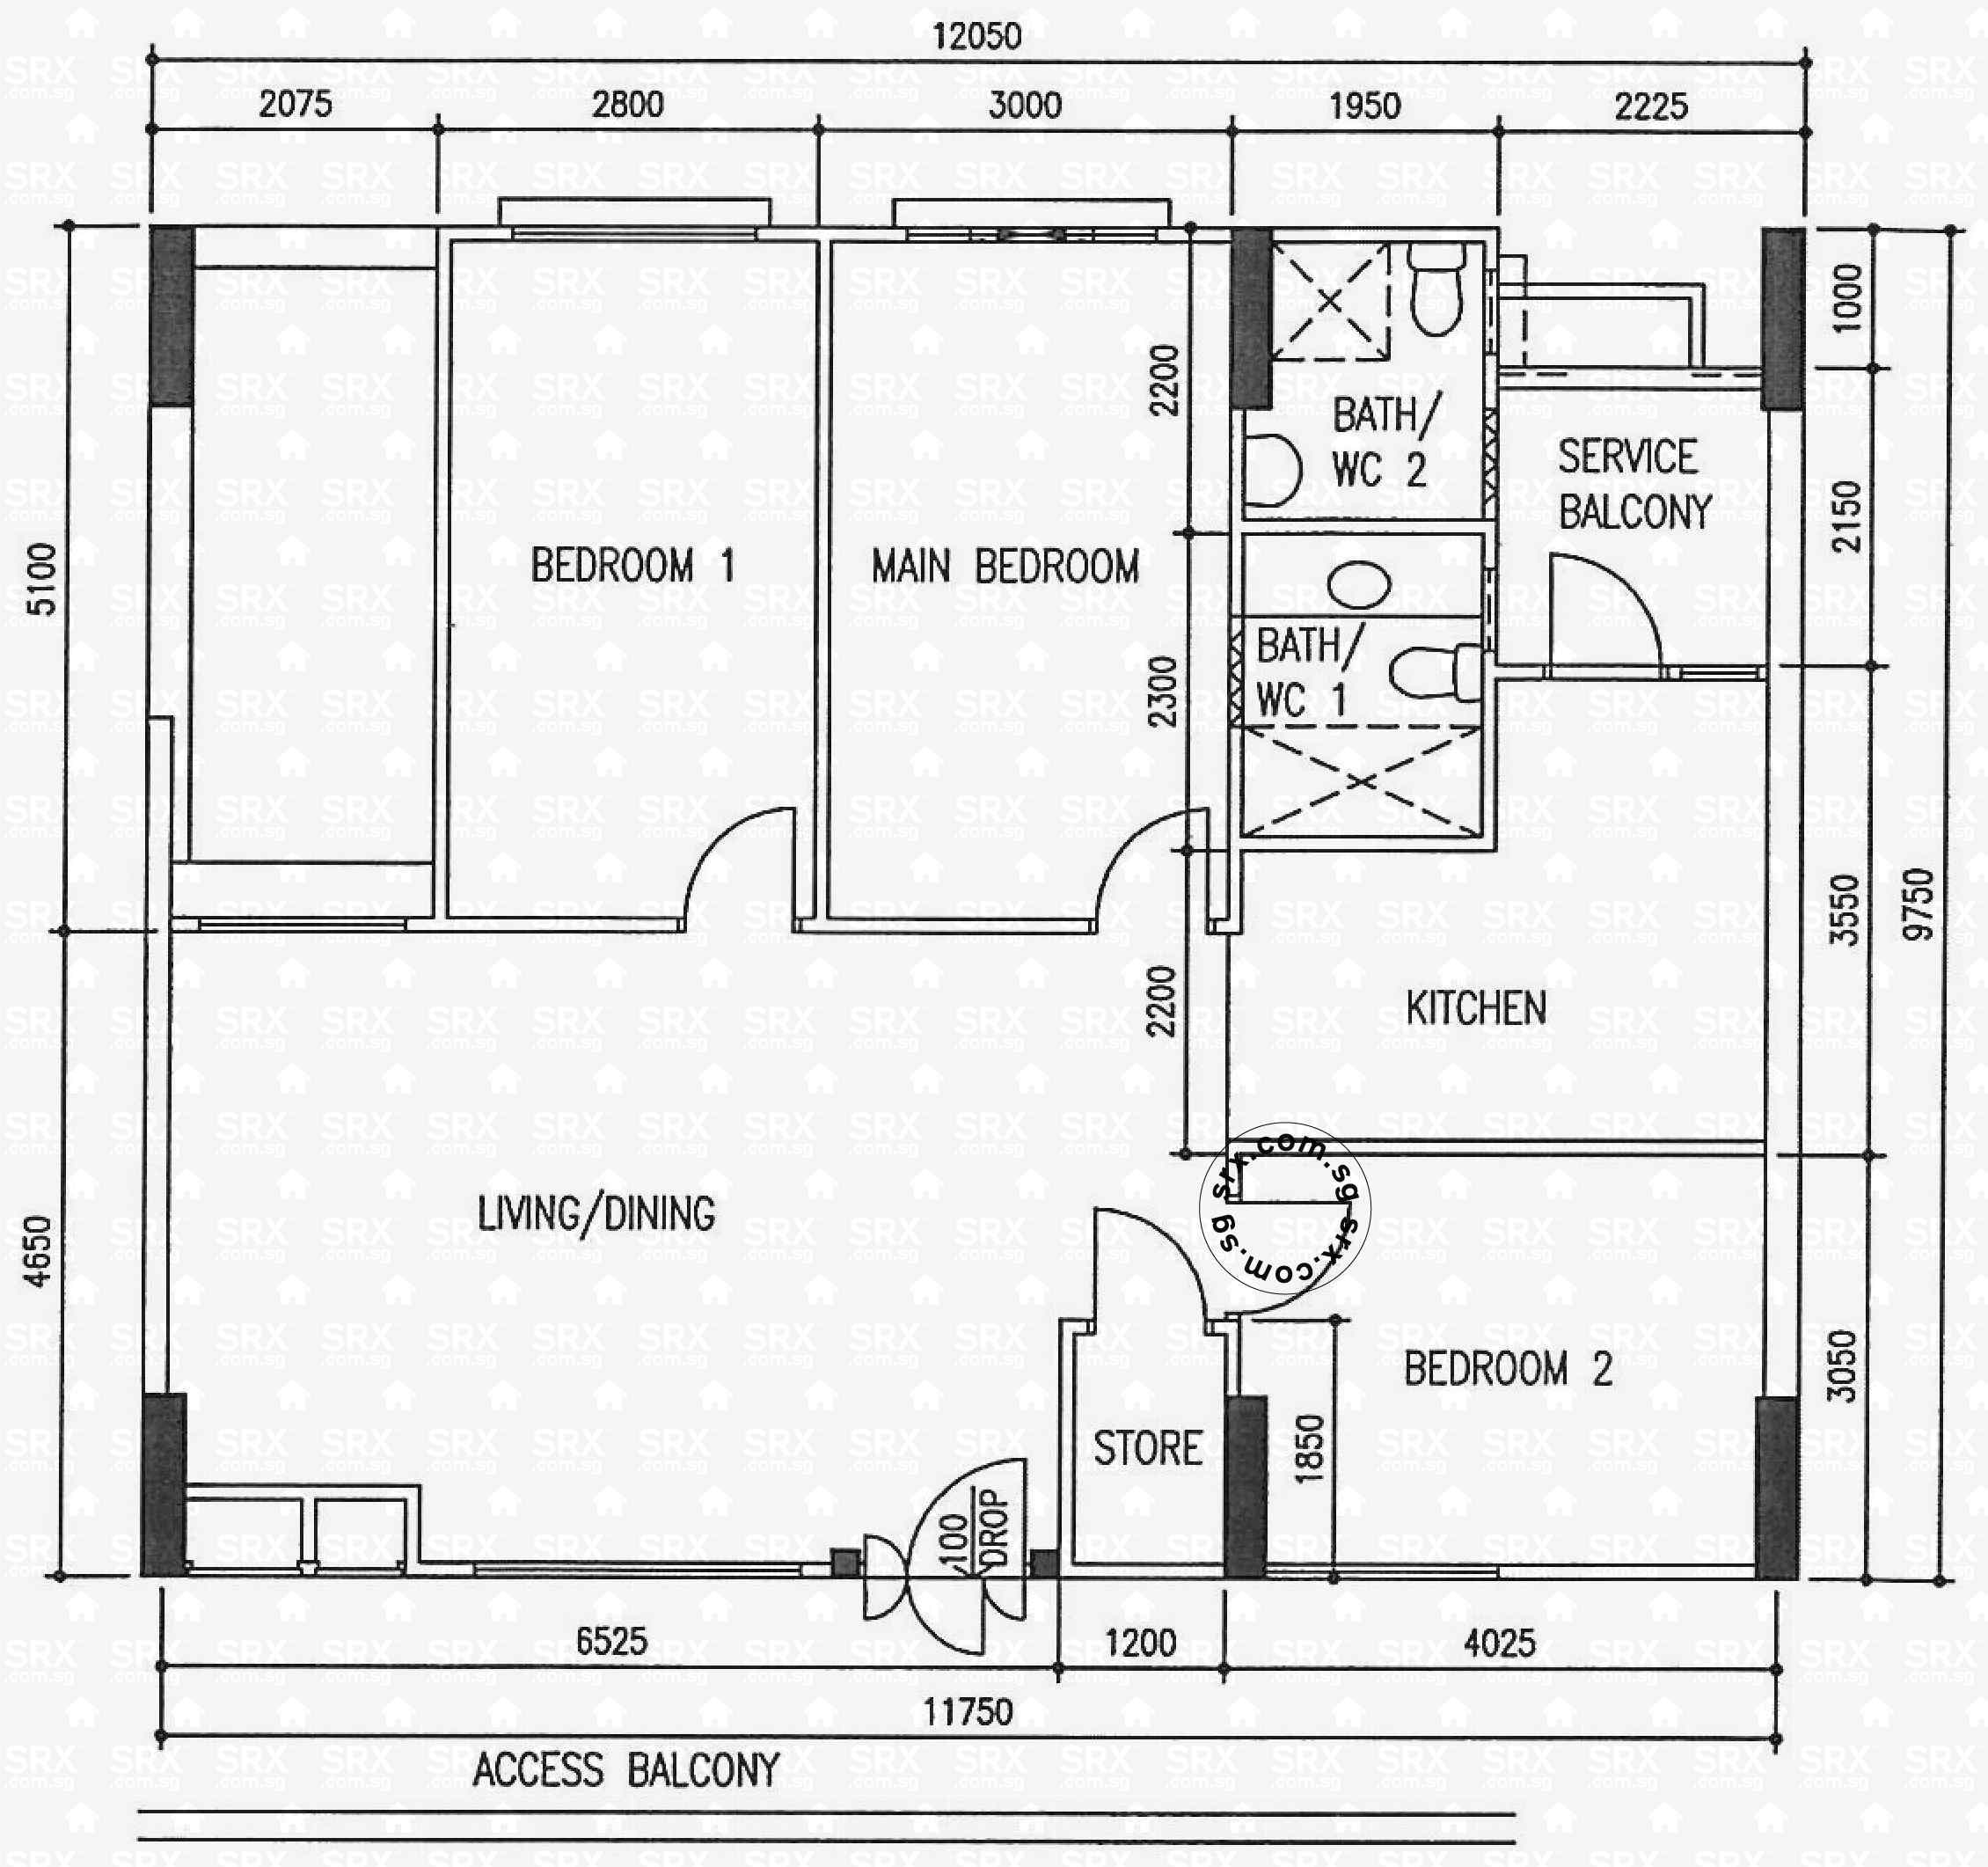 Floor plans for choa chu kang avenue 2 hdb details srx for 126 simcoe floor plan